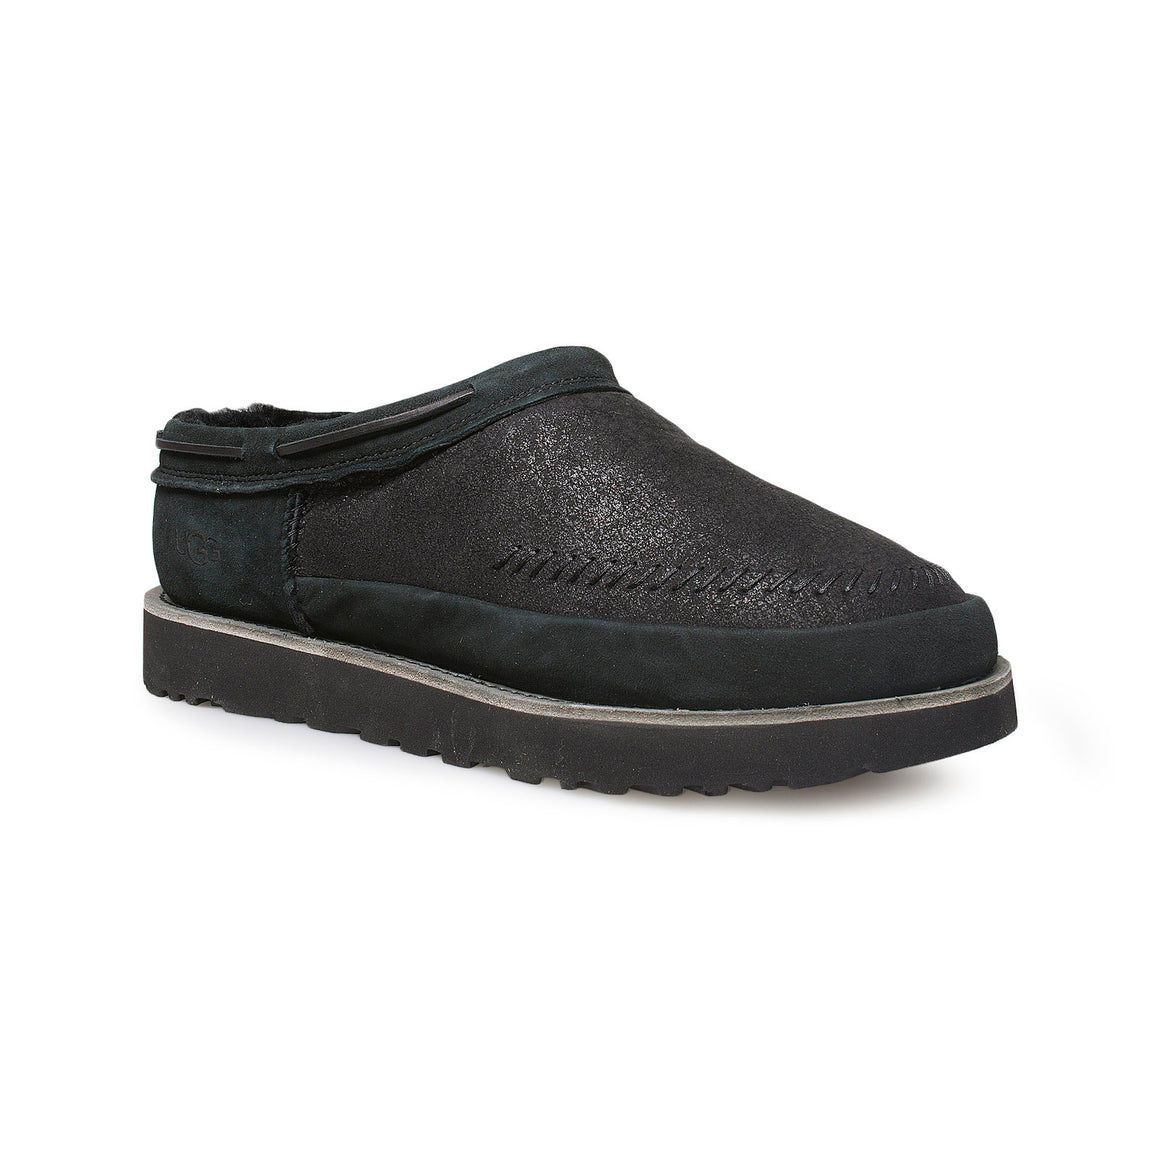 UGG Campfire Slip On Black TNL Shoes - Men's